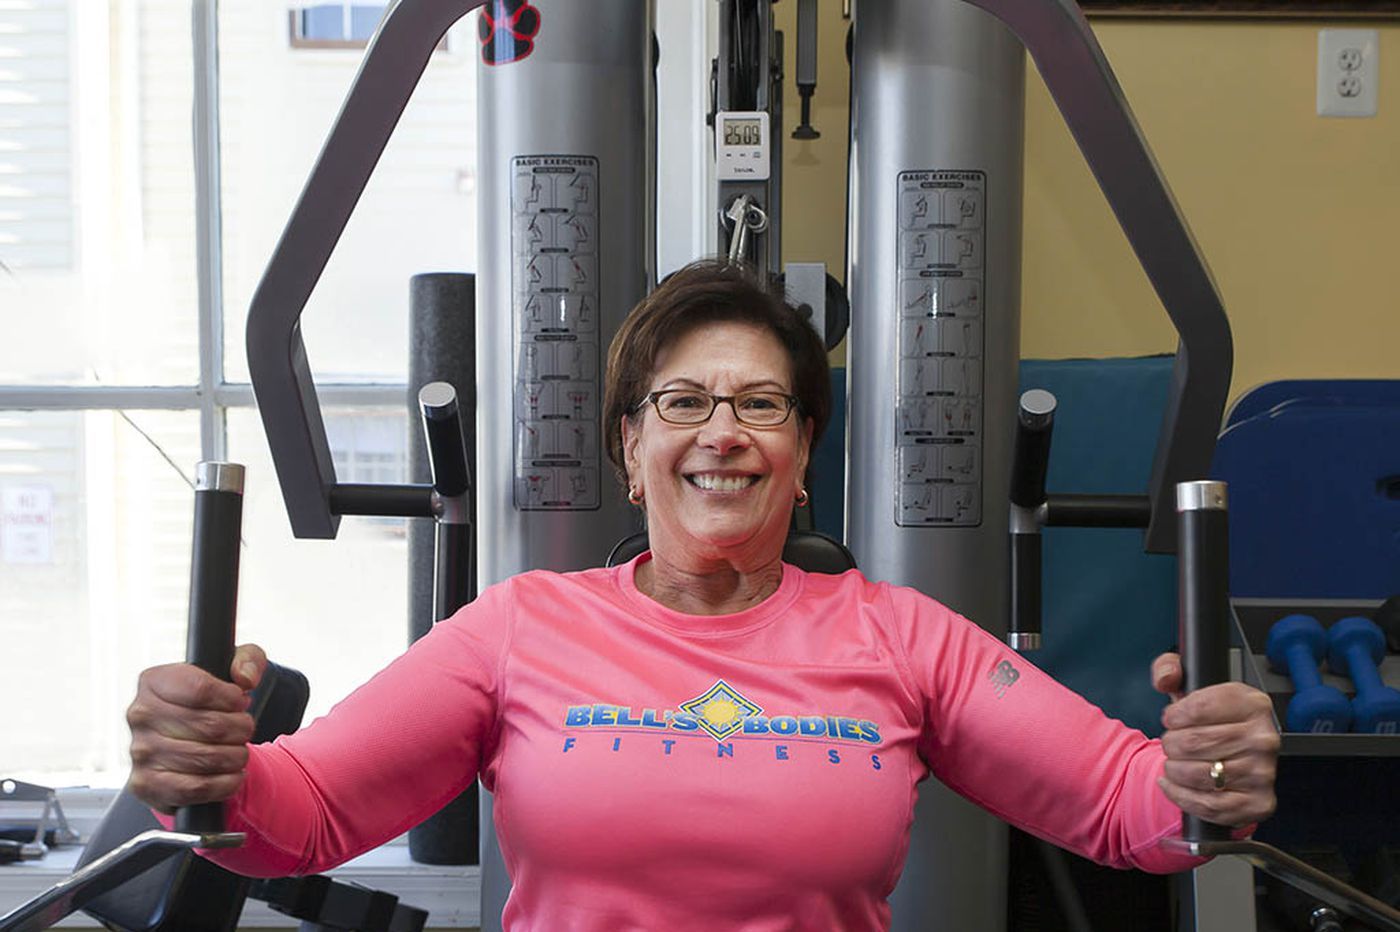 67-year-old 'Fit Nation' contestant shows you're never too old to exercise